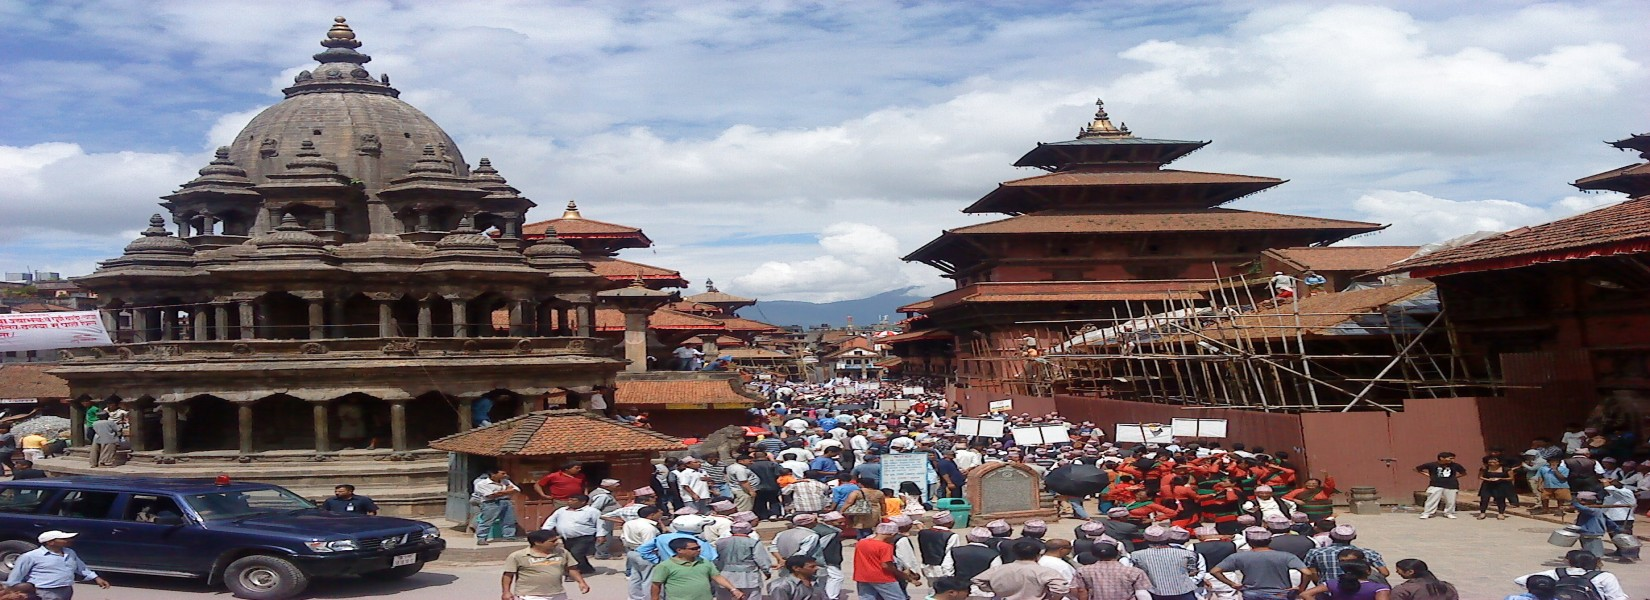 Patan and Lalitpur Tour